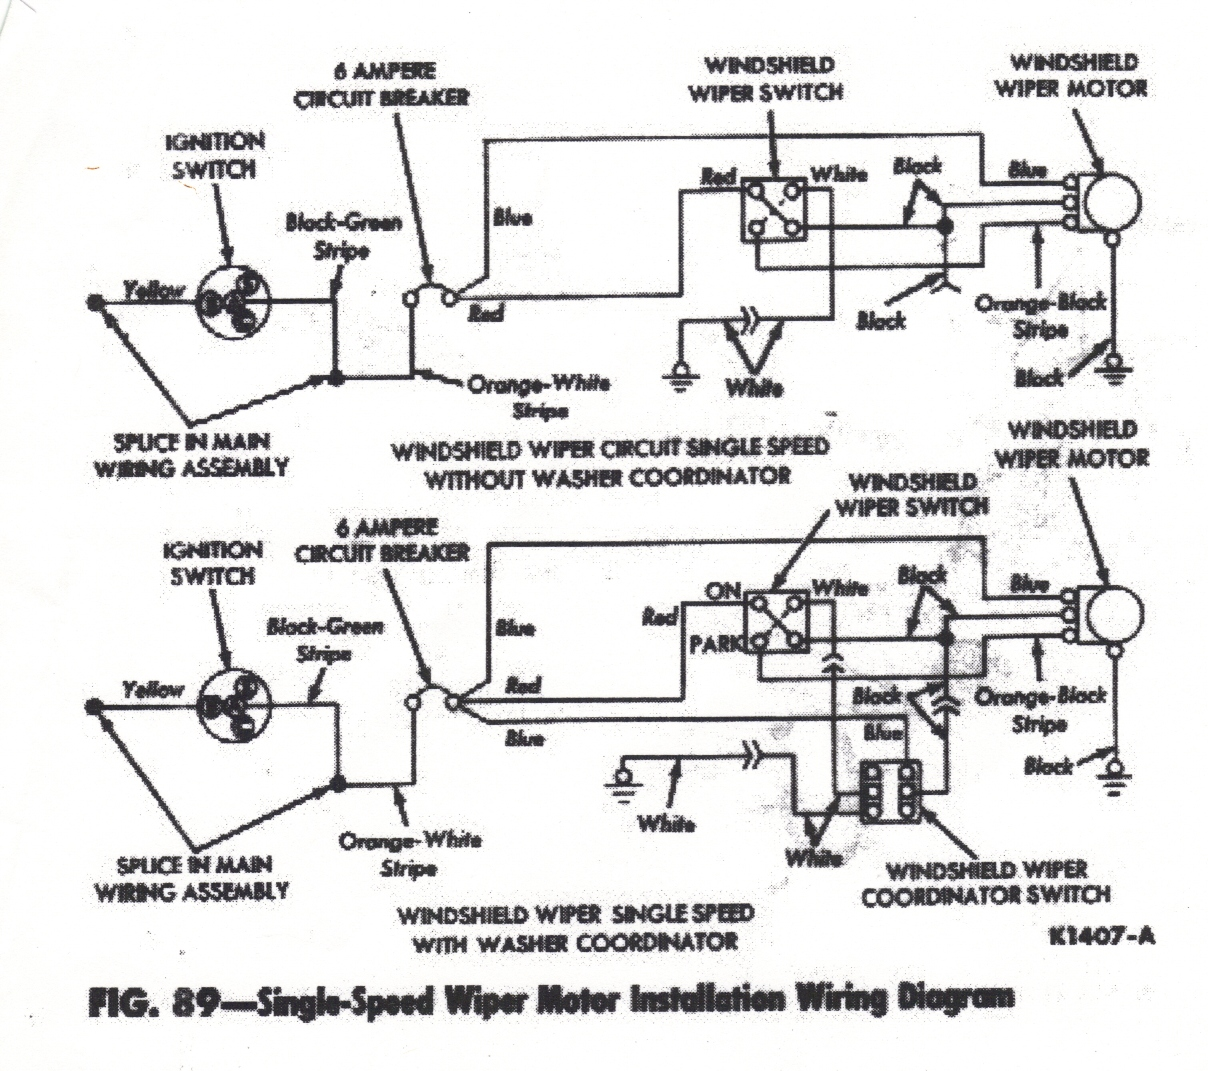 Windshield Wiper Motor Wiring Diagram Ford Schematics 70 Trusted U2022 Rh Soulmatestyle Co Schematic Chevy